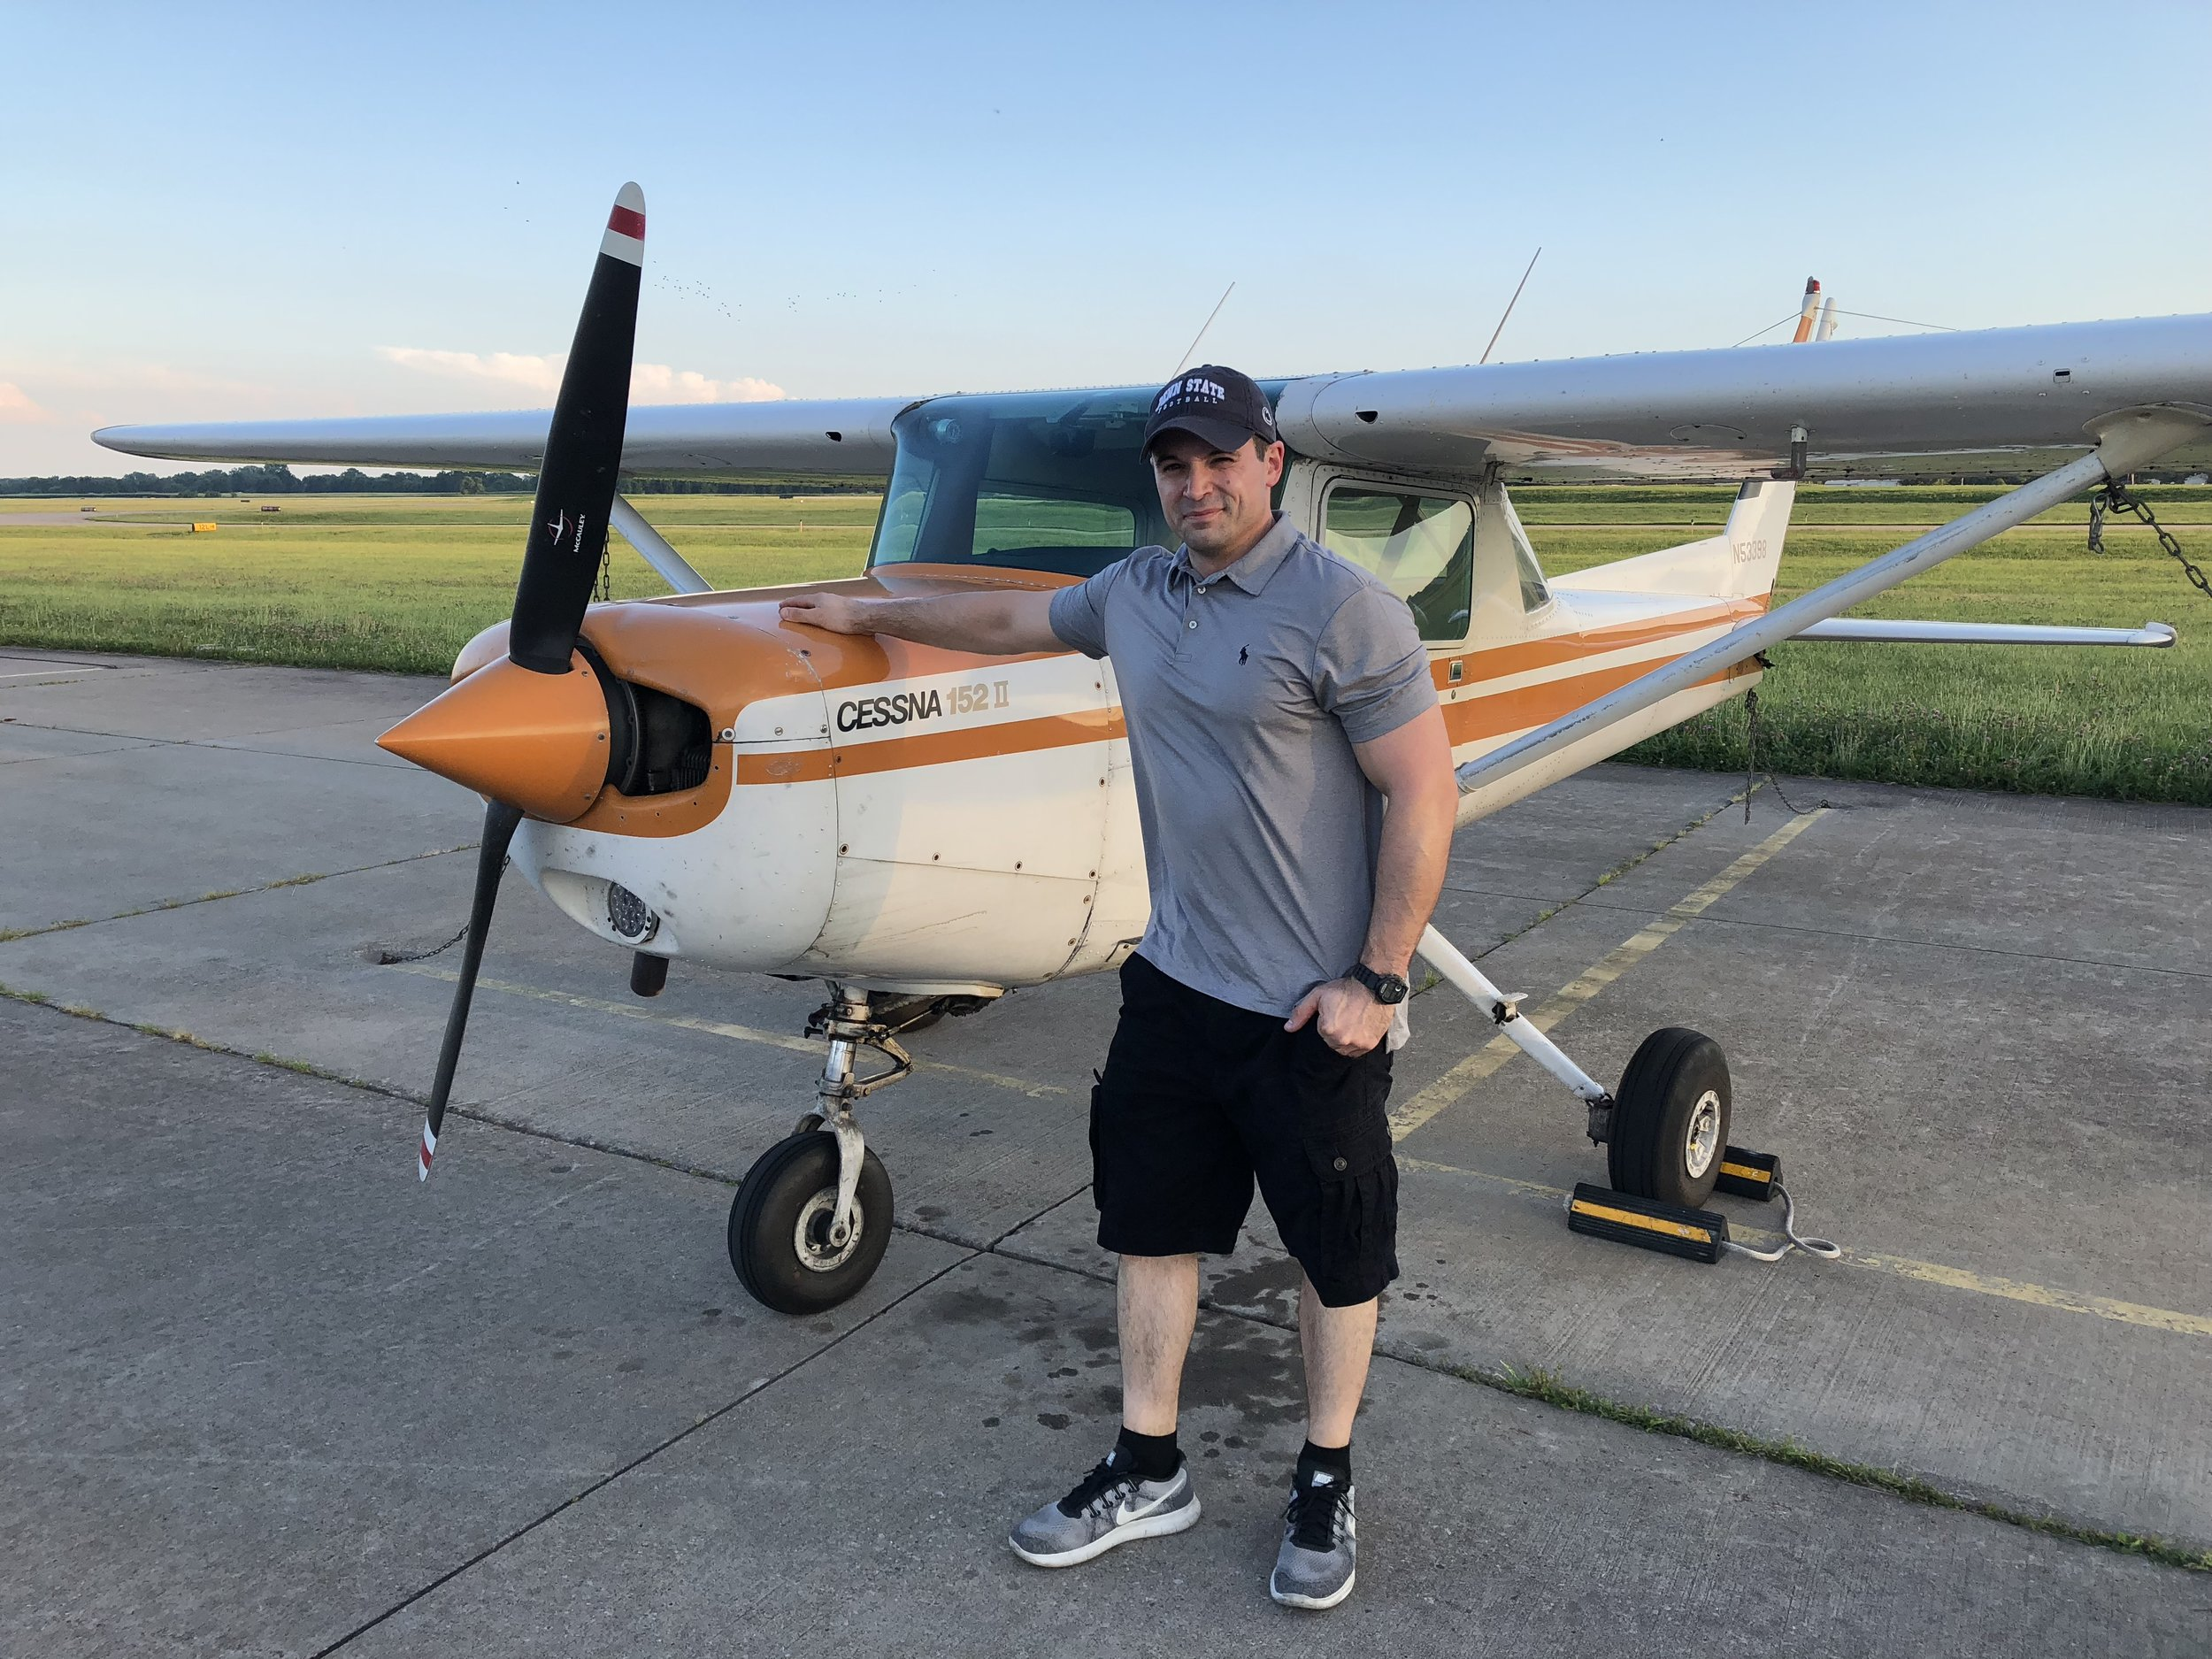 Chad's Solo Flight - 6-23-2018